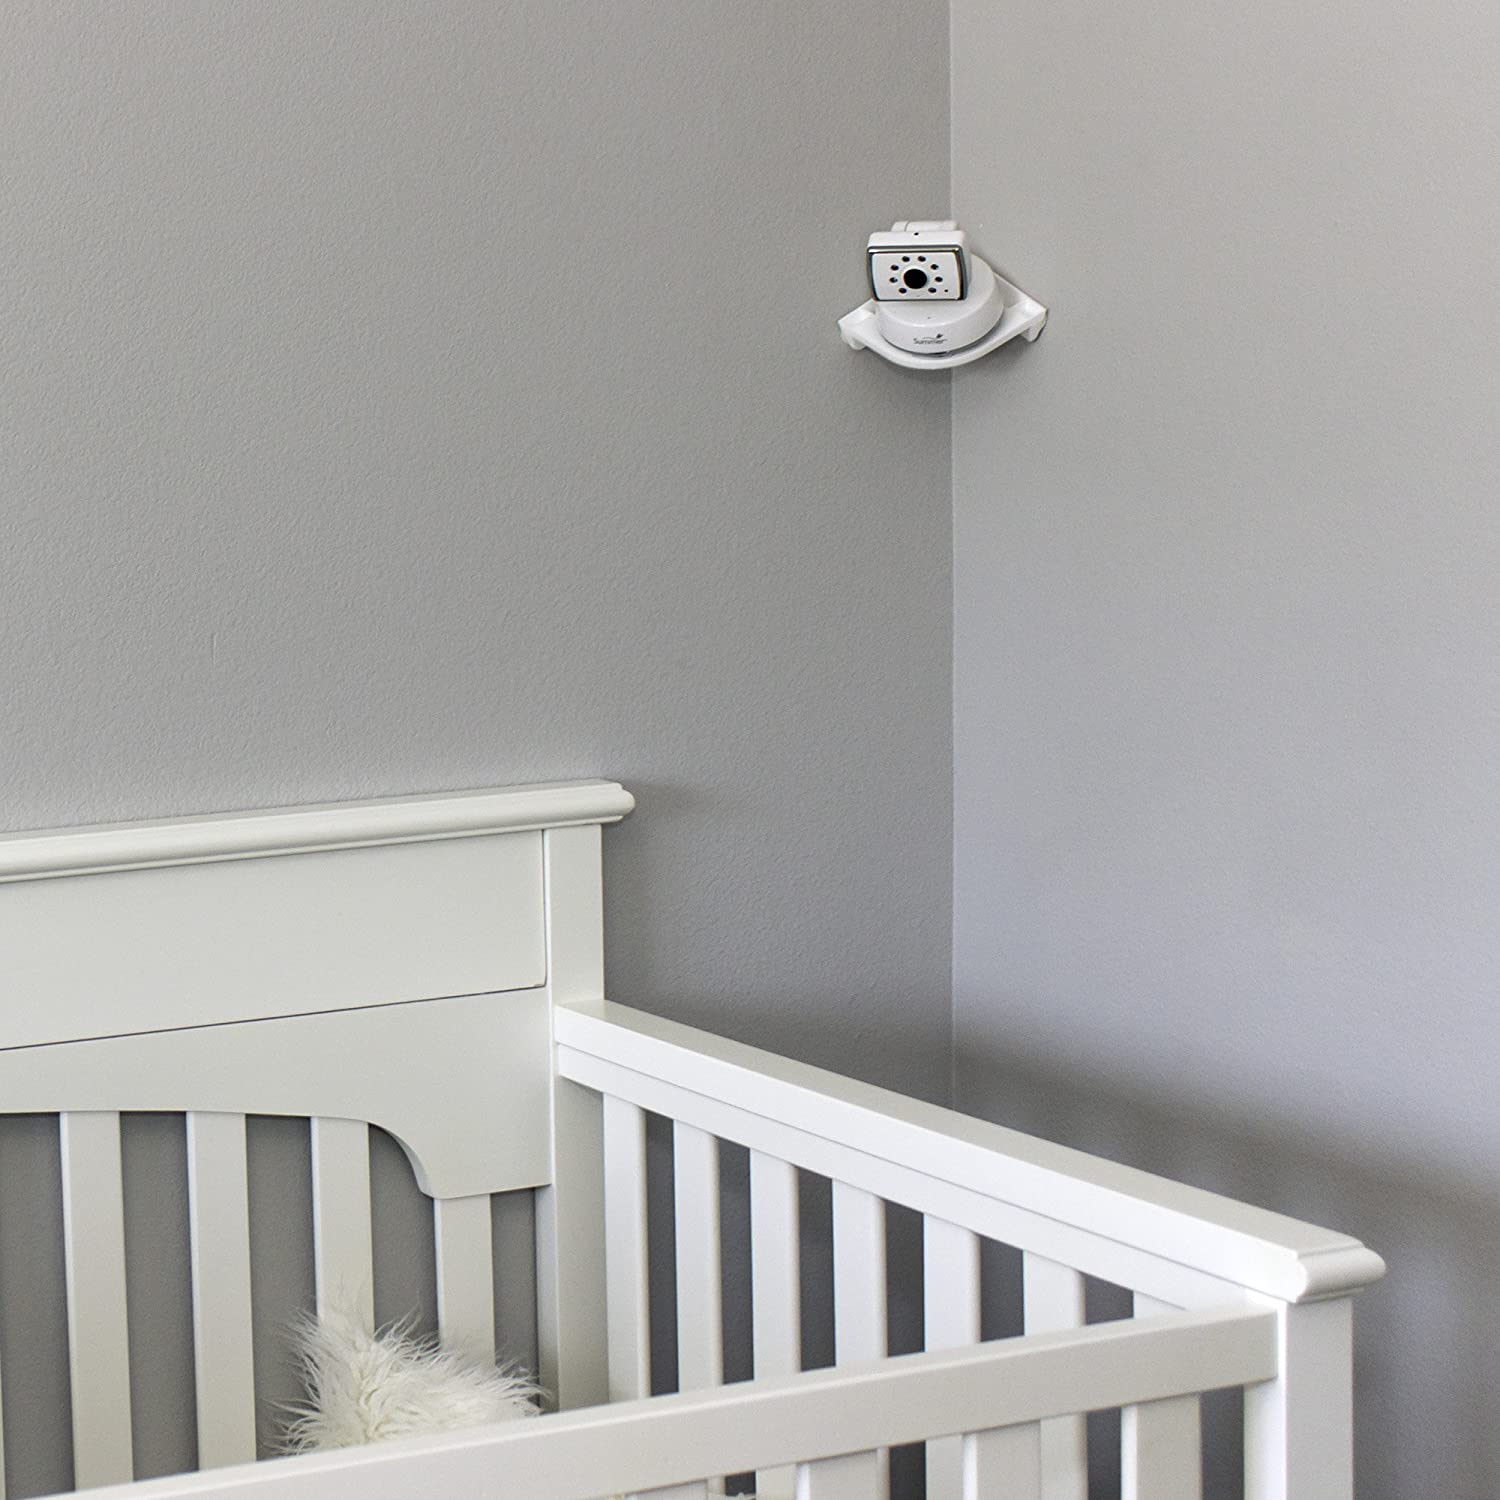 - Compatible With Most Baby Monitors Vusee The Universal Baby Monitor Shelf Peel /& Stick Installation Flat